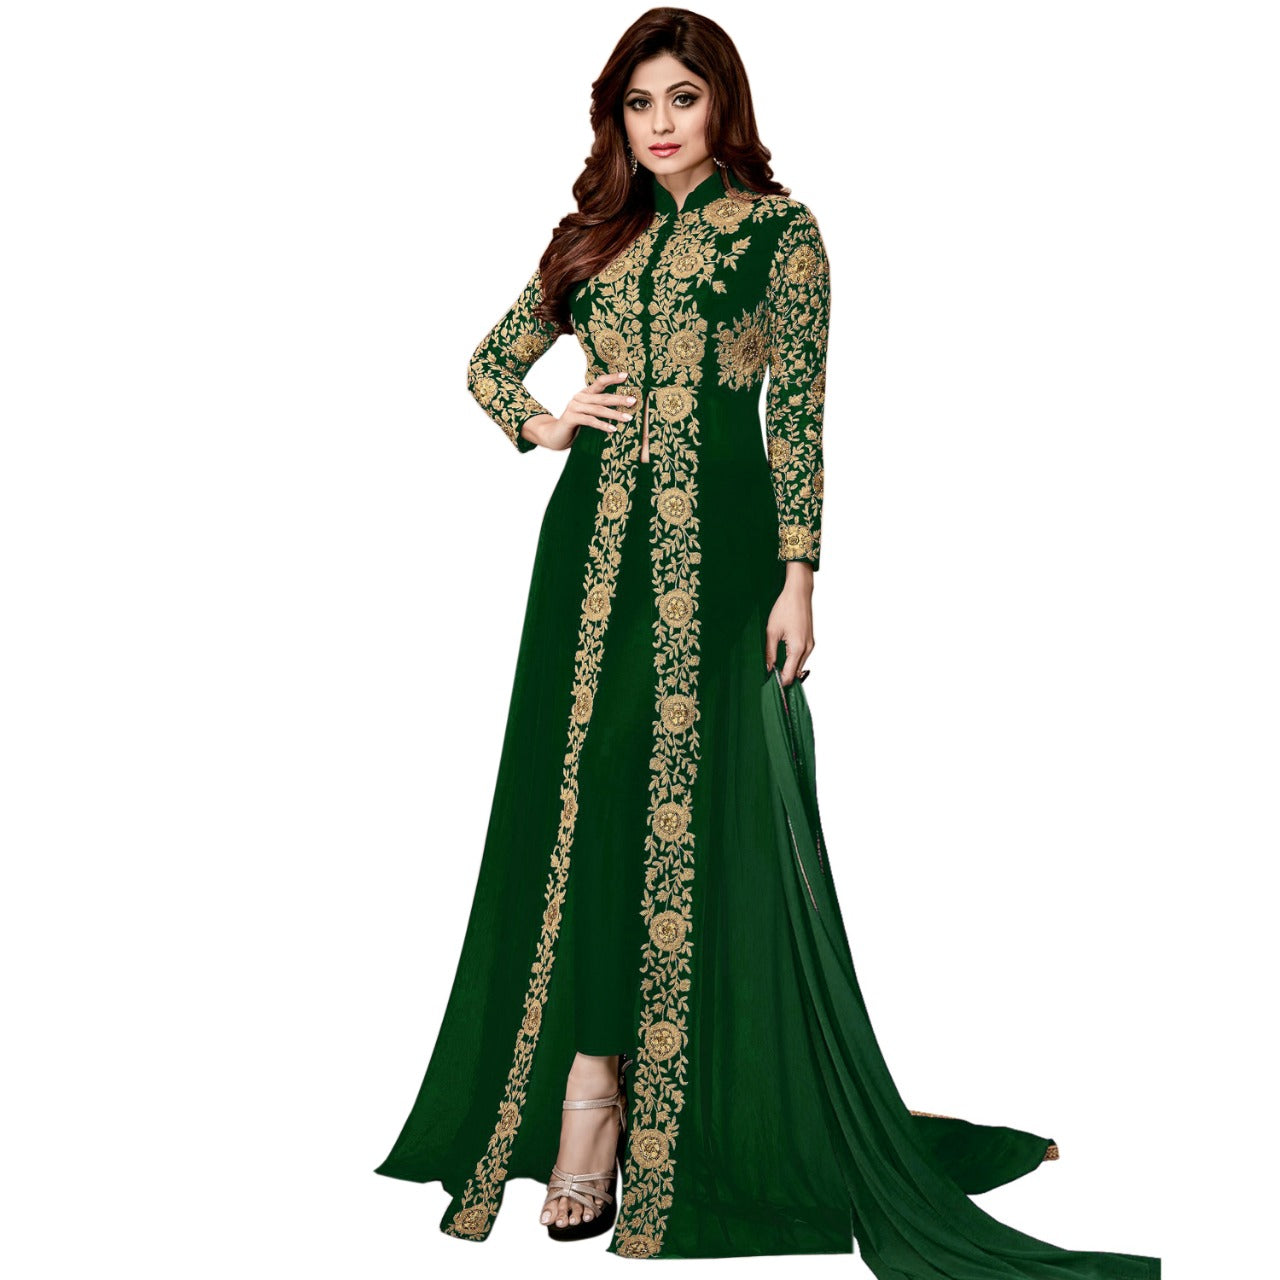 Women Georgette Green Anarkali Long Salwar Suit With Dupatta